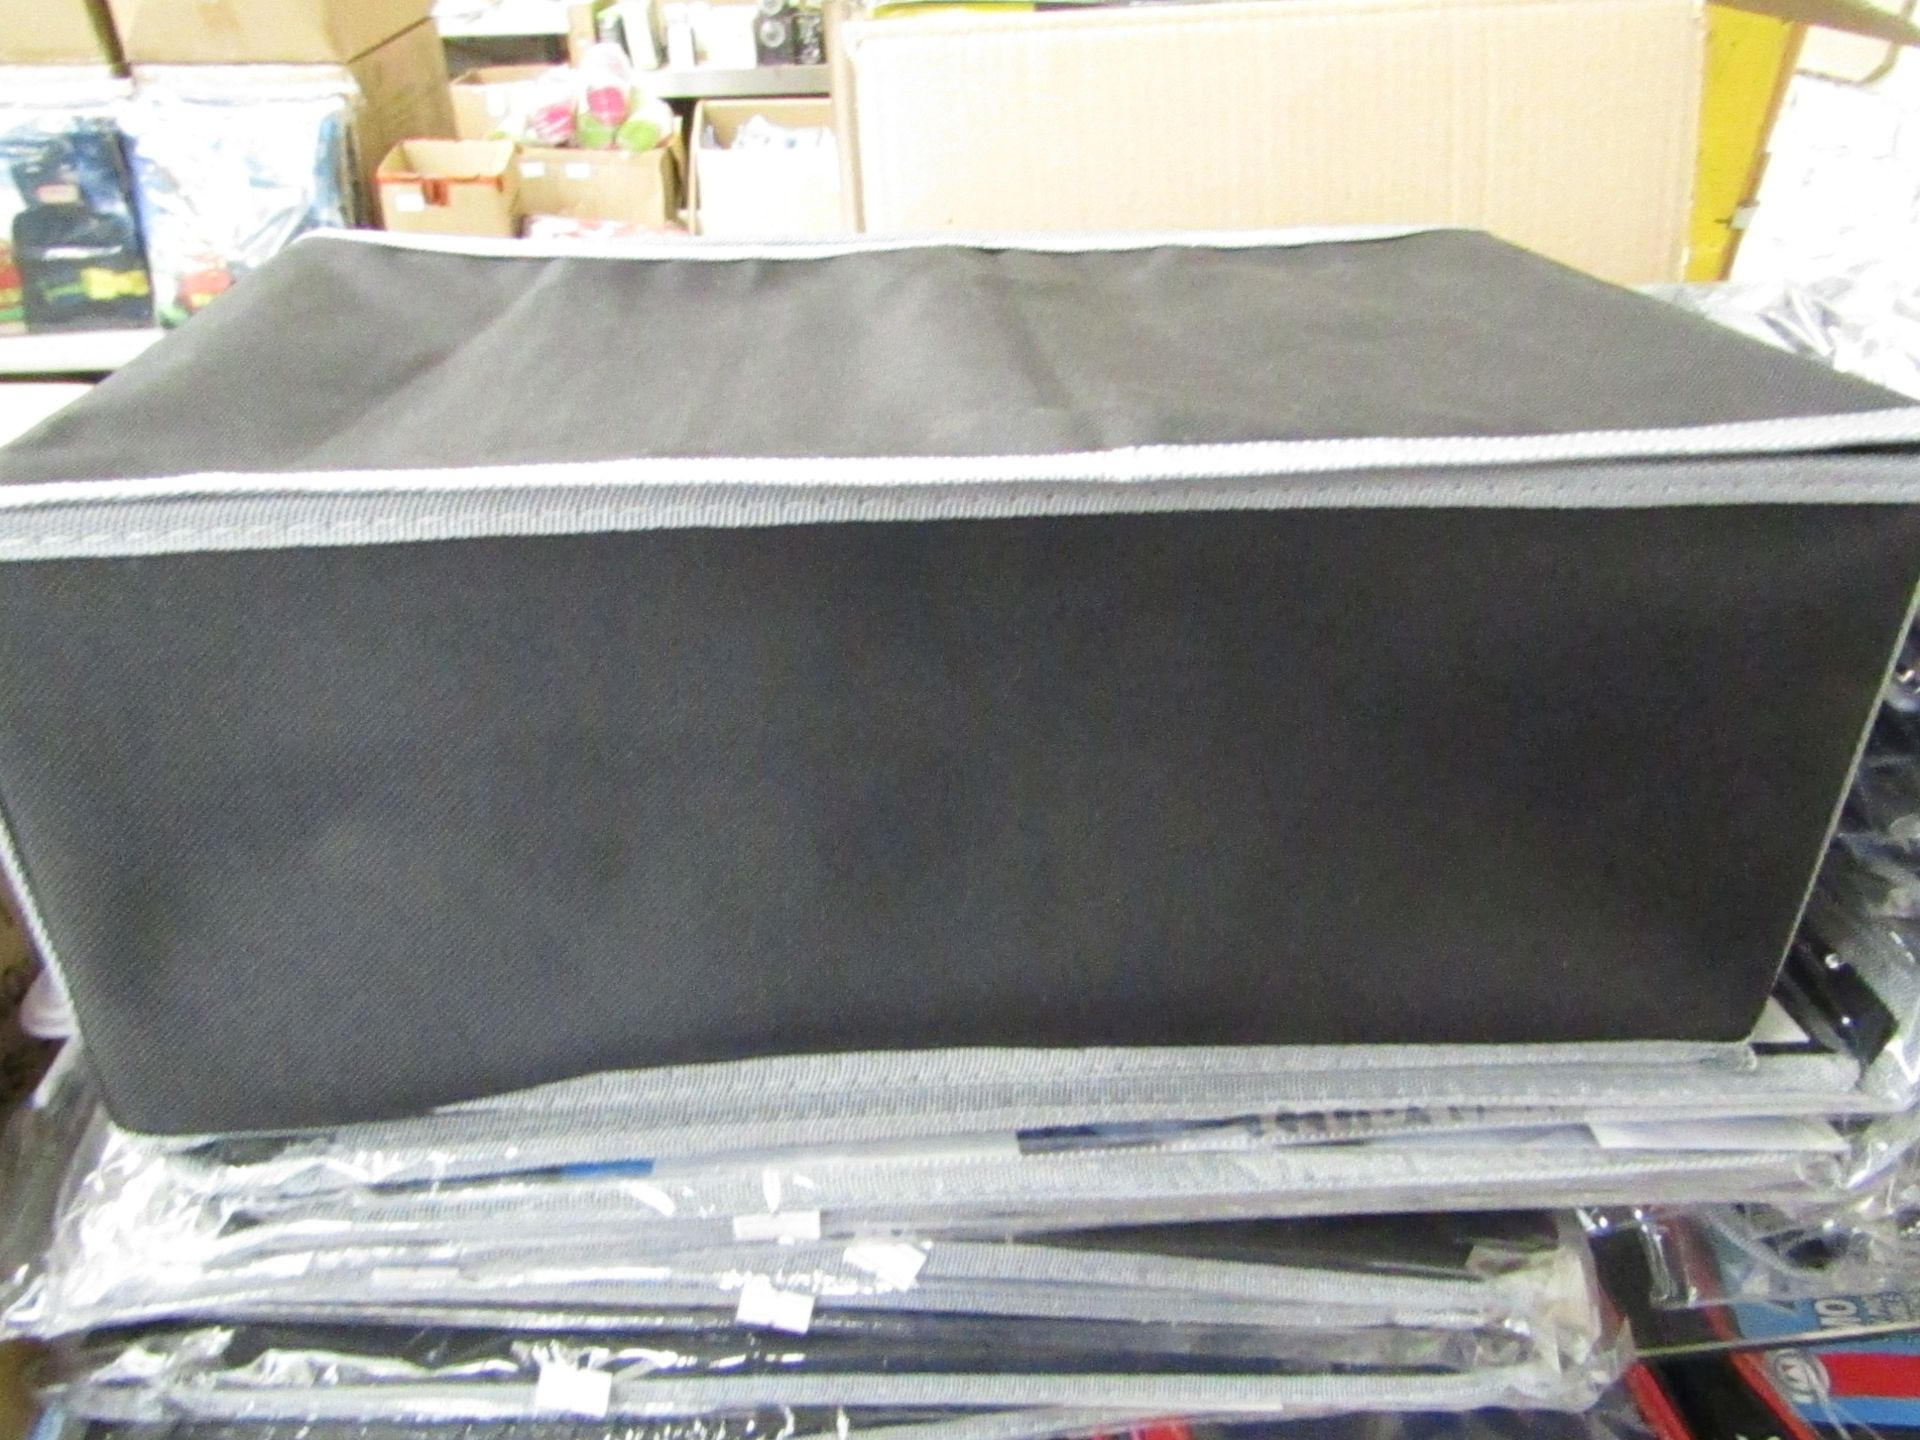 Lot 28 - 2 x Streetwise Car Organisers for front or rear 40cm x 24cm x 16cm new & packaged